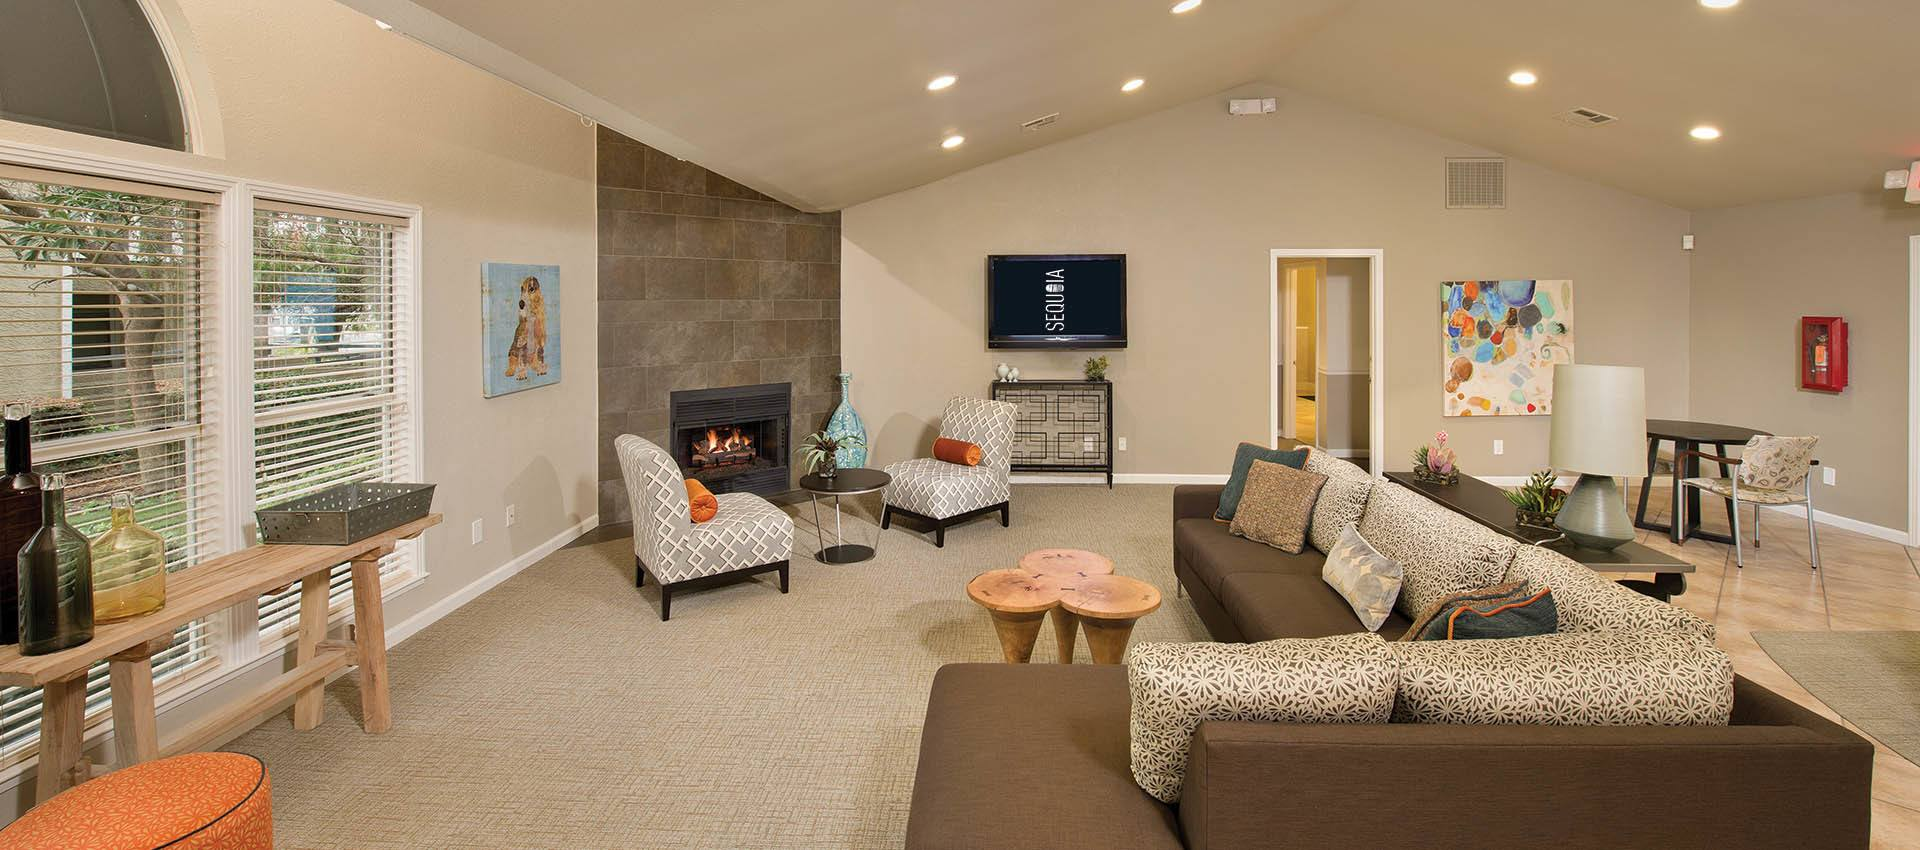 Clubhouse With Kitchen at Sterling Heights Apartment Homes in Benicia